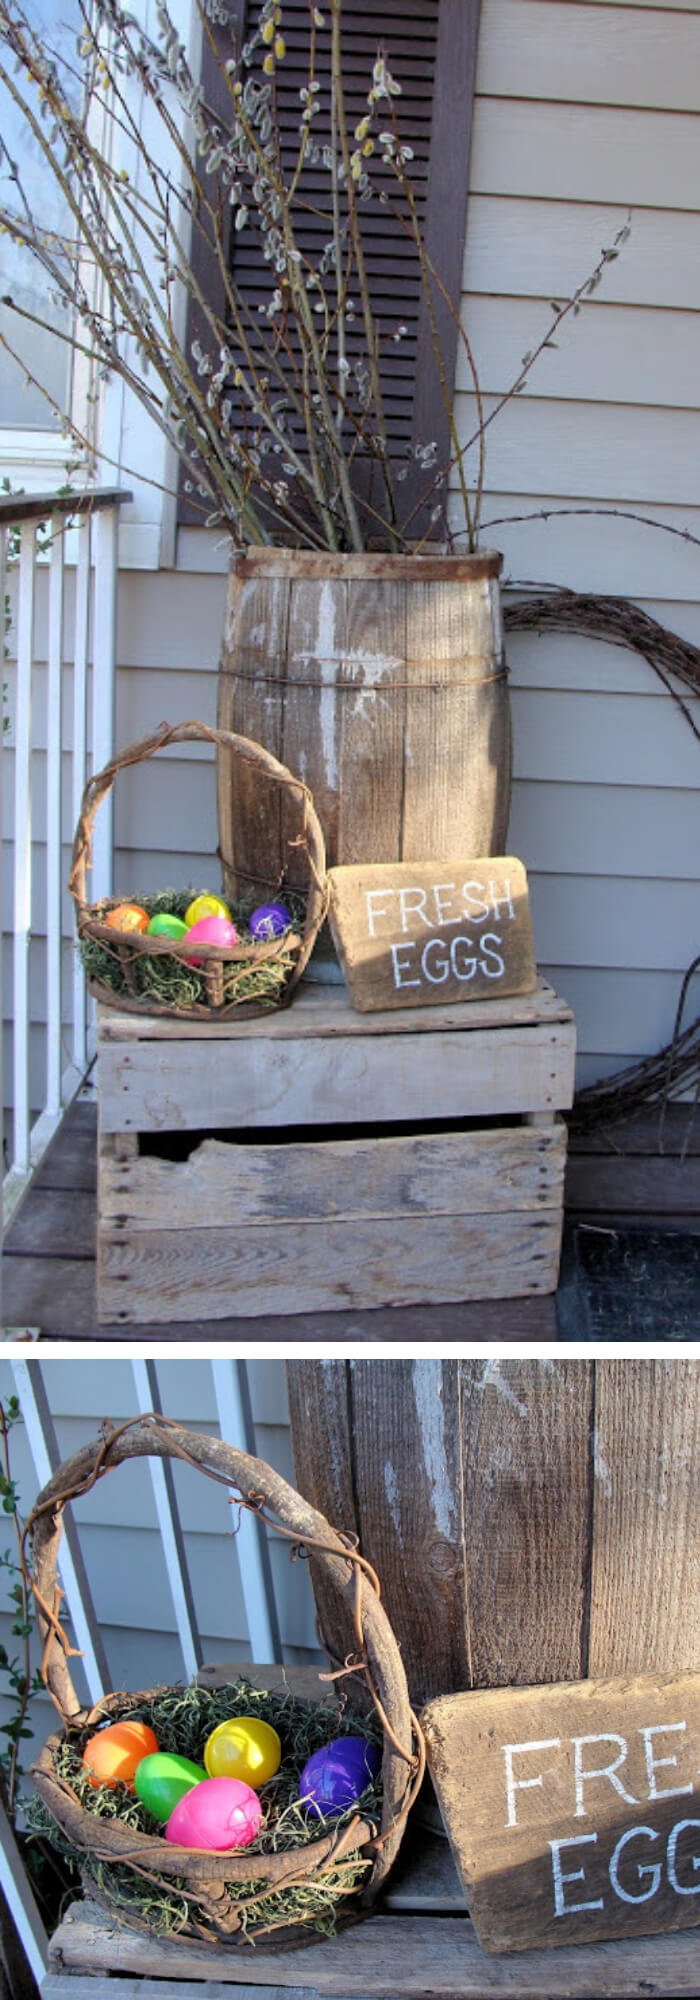 Crate, barrel, pitch fork with a wooden basket | Best Easter Porch Decorating Ideas